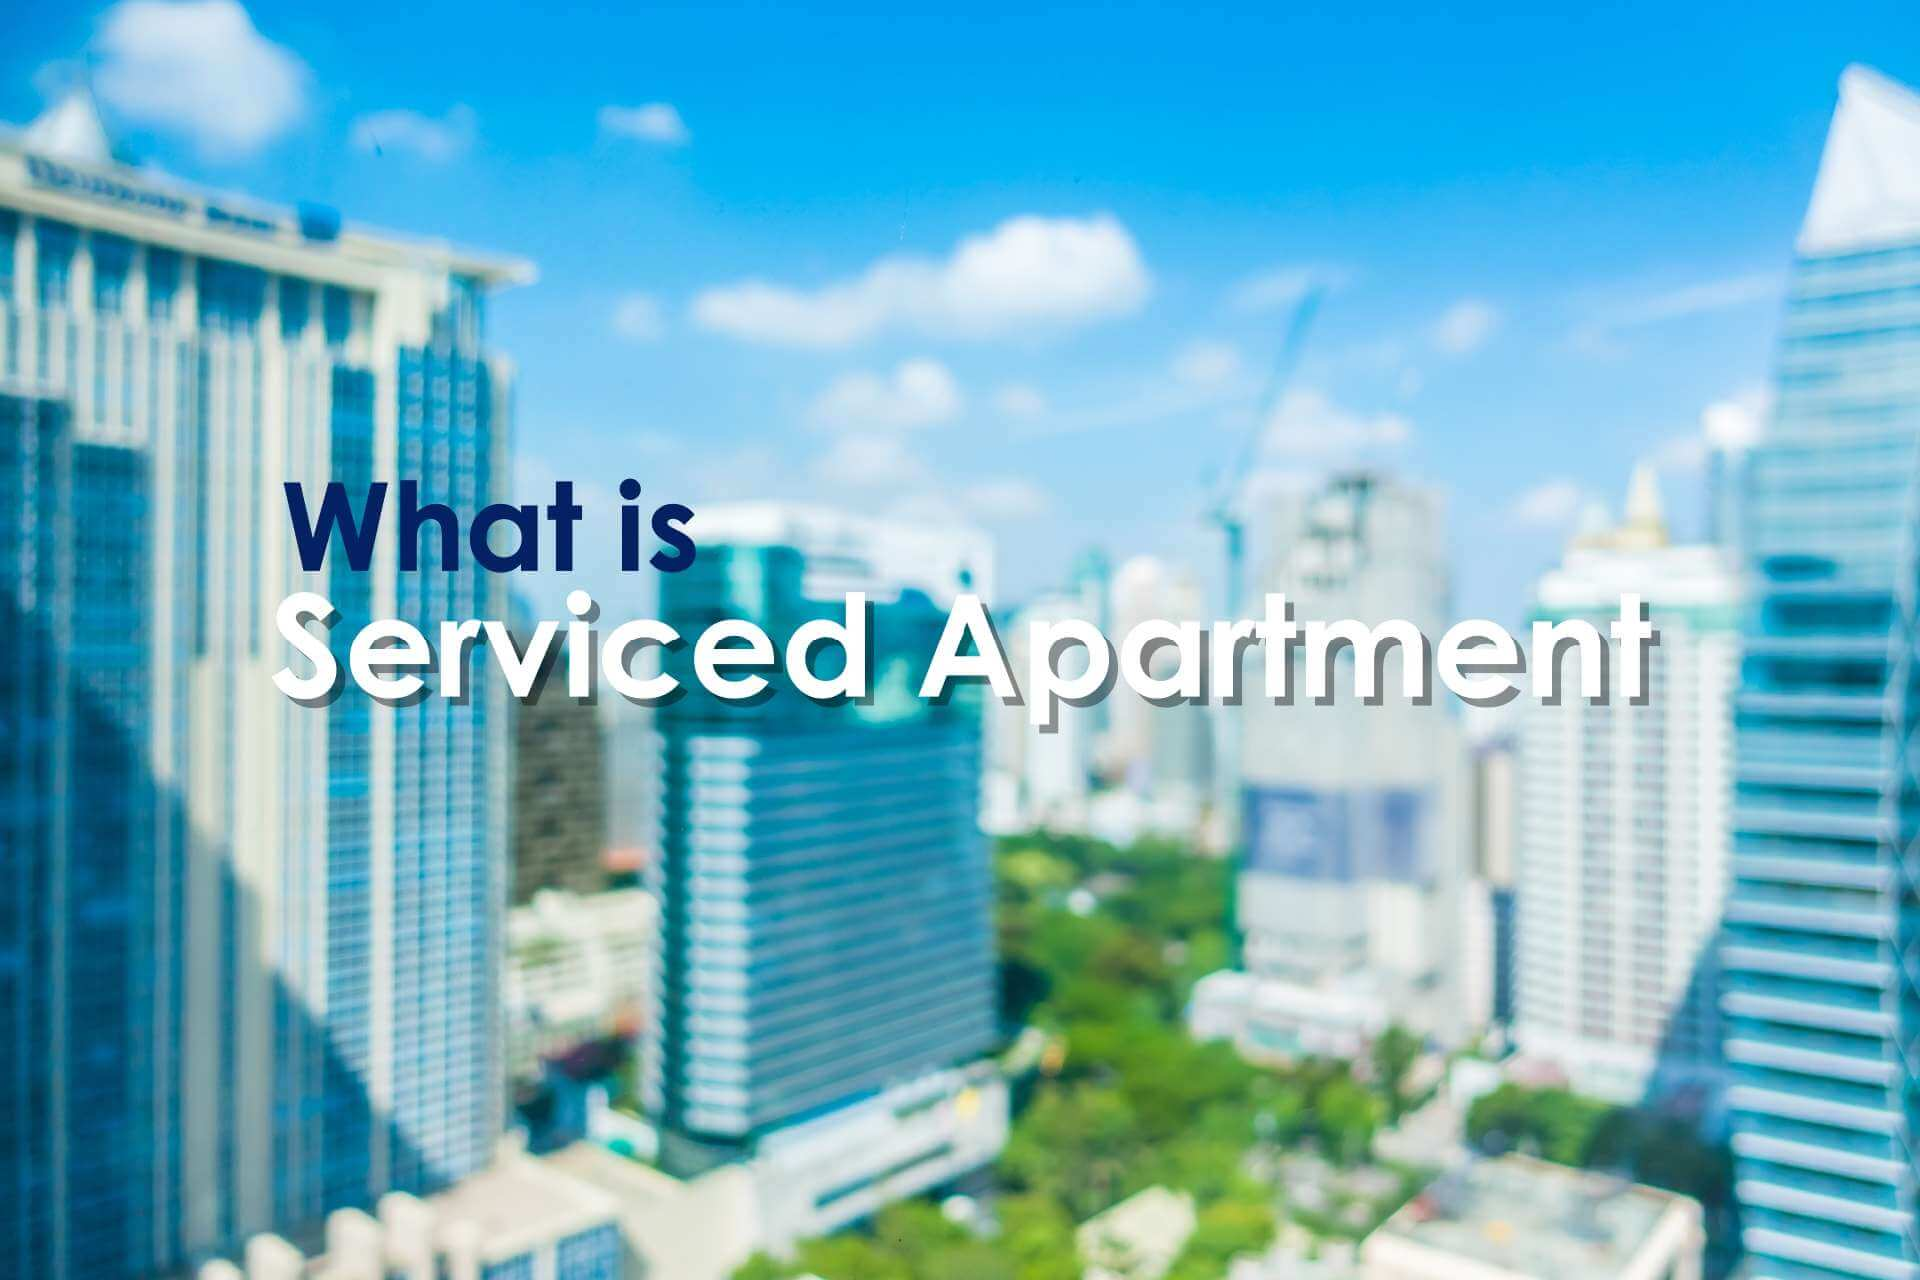 What is a serviced apartment